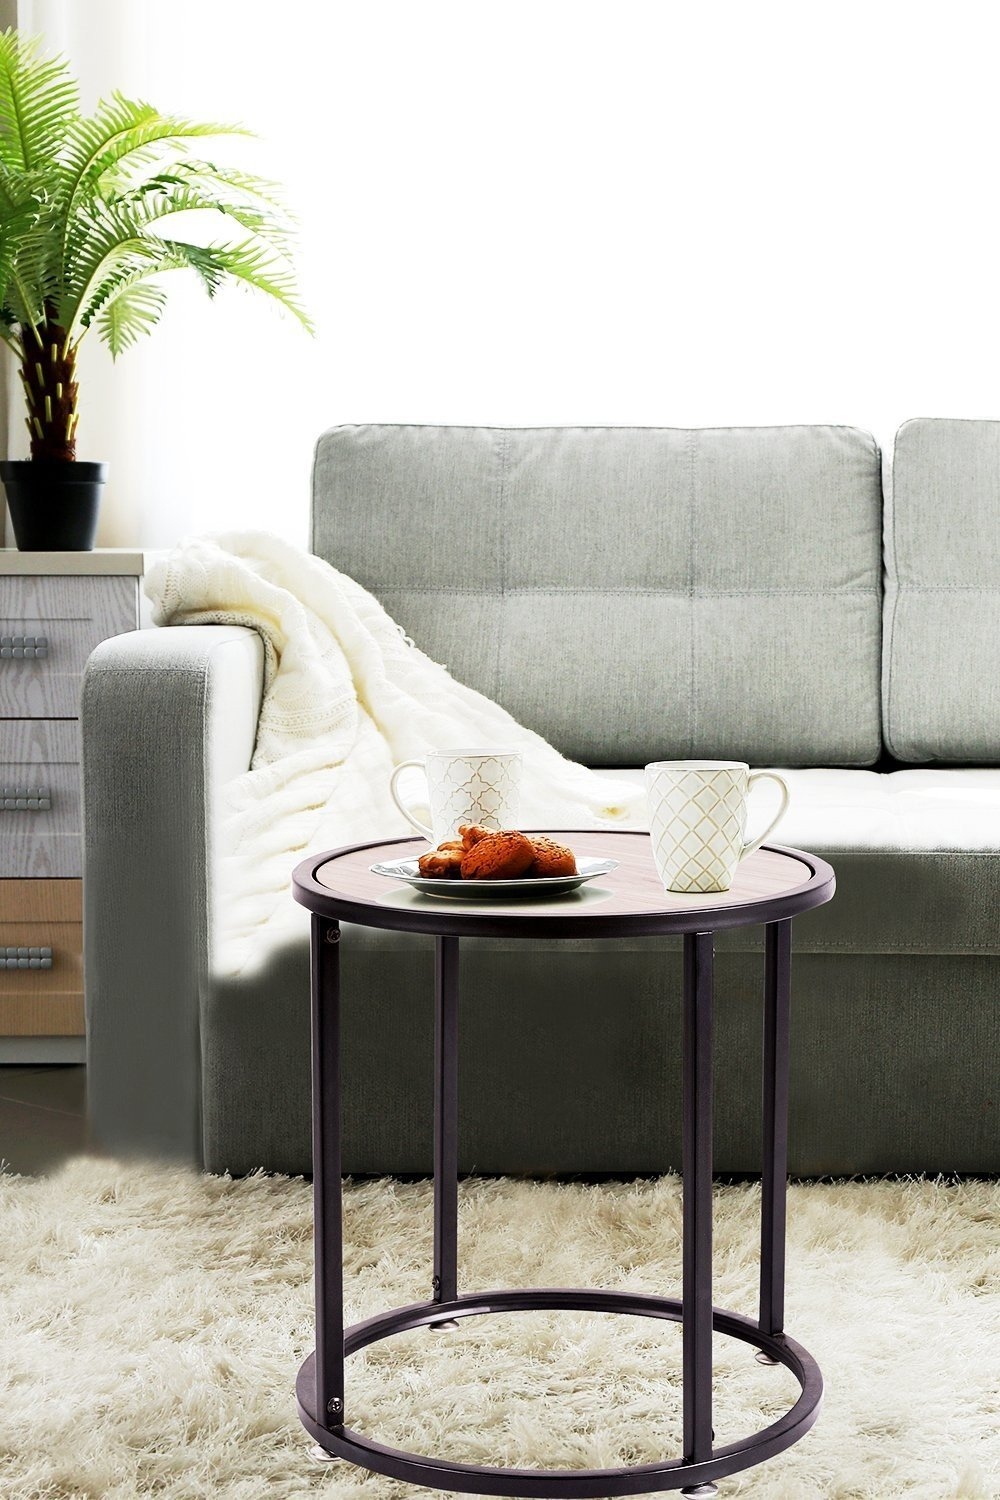 Indoor Multi-function Accent table Study Computer Desk Bedroom Living Room Modern Style End Table Sofa Side Table Coffee Table Wooden Round Coffee Table